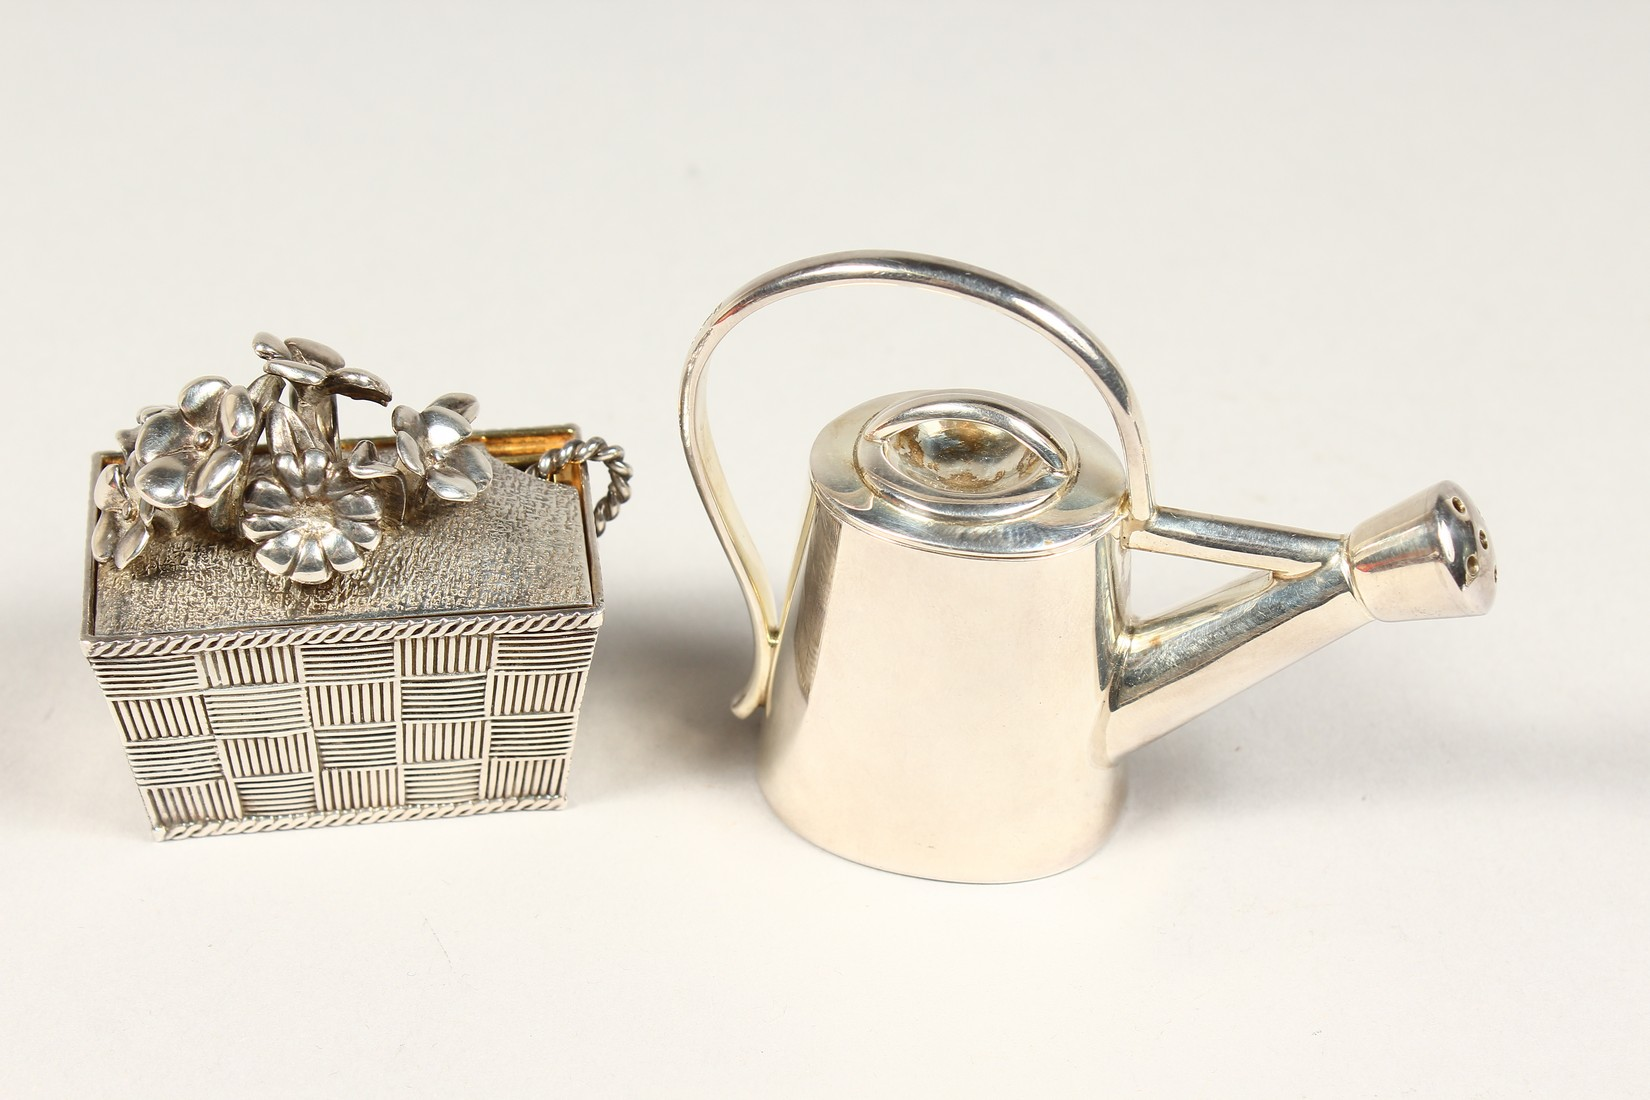 A THISTLE AND BEE SILVER BOX AND WATERING CAN - Image 3 of 5